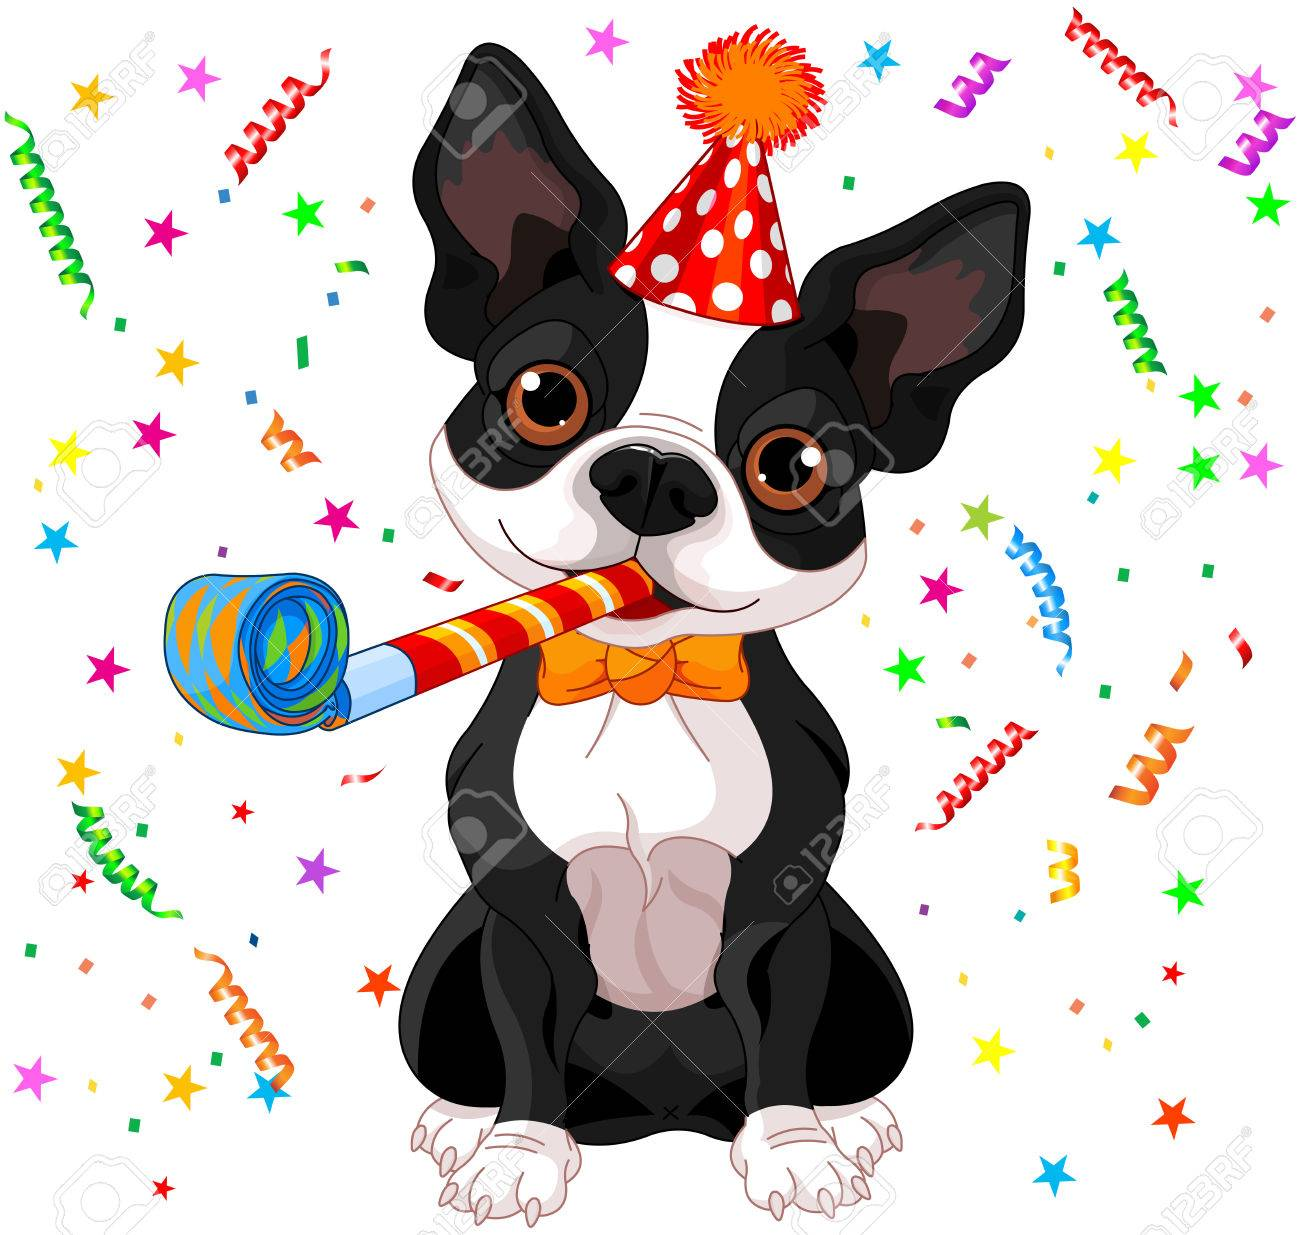 Chiens en maison: gestion du ramassage des déjections 35588778-illustration-of-cute-boston-terrier-celebrating